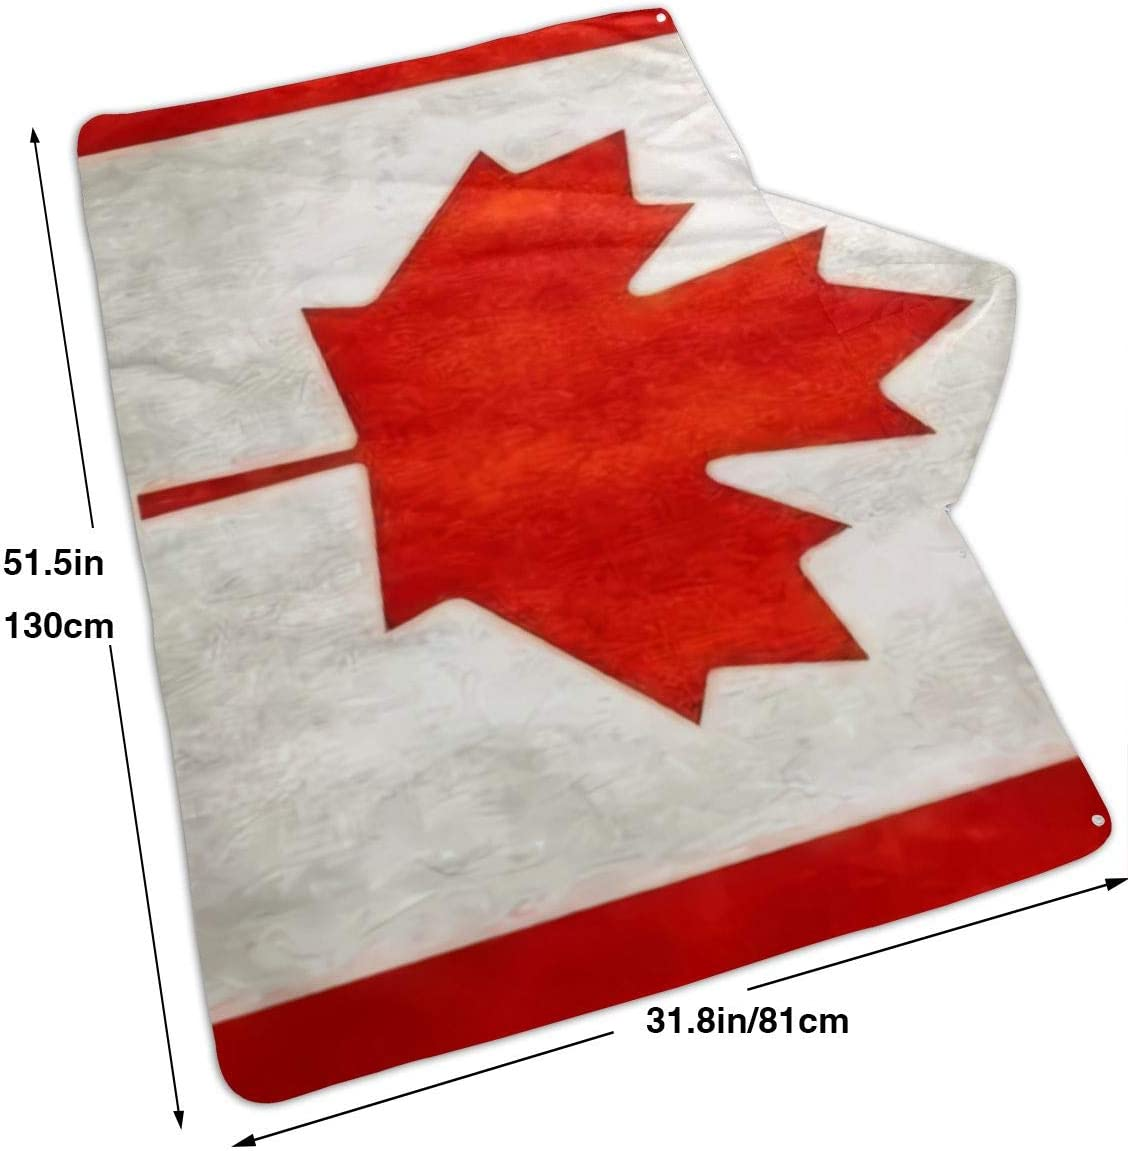 Pool Vintage Canadian Red Maple Flag Microfiber Towel Beach Travel Multicolor 31.8x51.5 Inch Quick Dry Compact for Swim Boat Beach Large 81x130cm